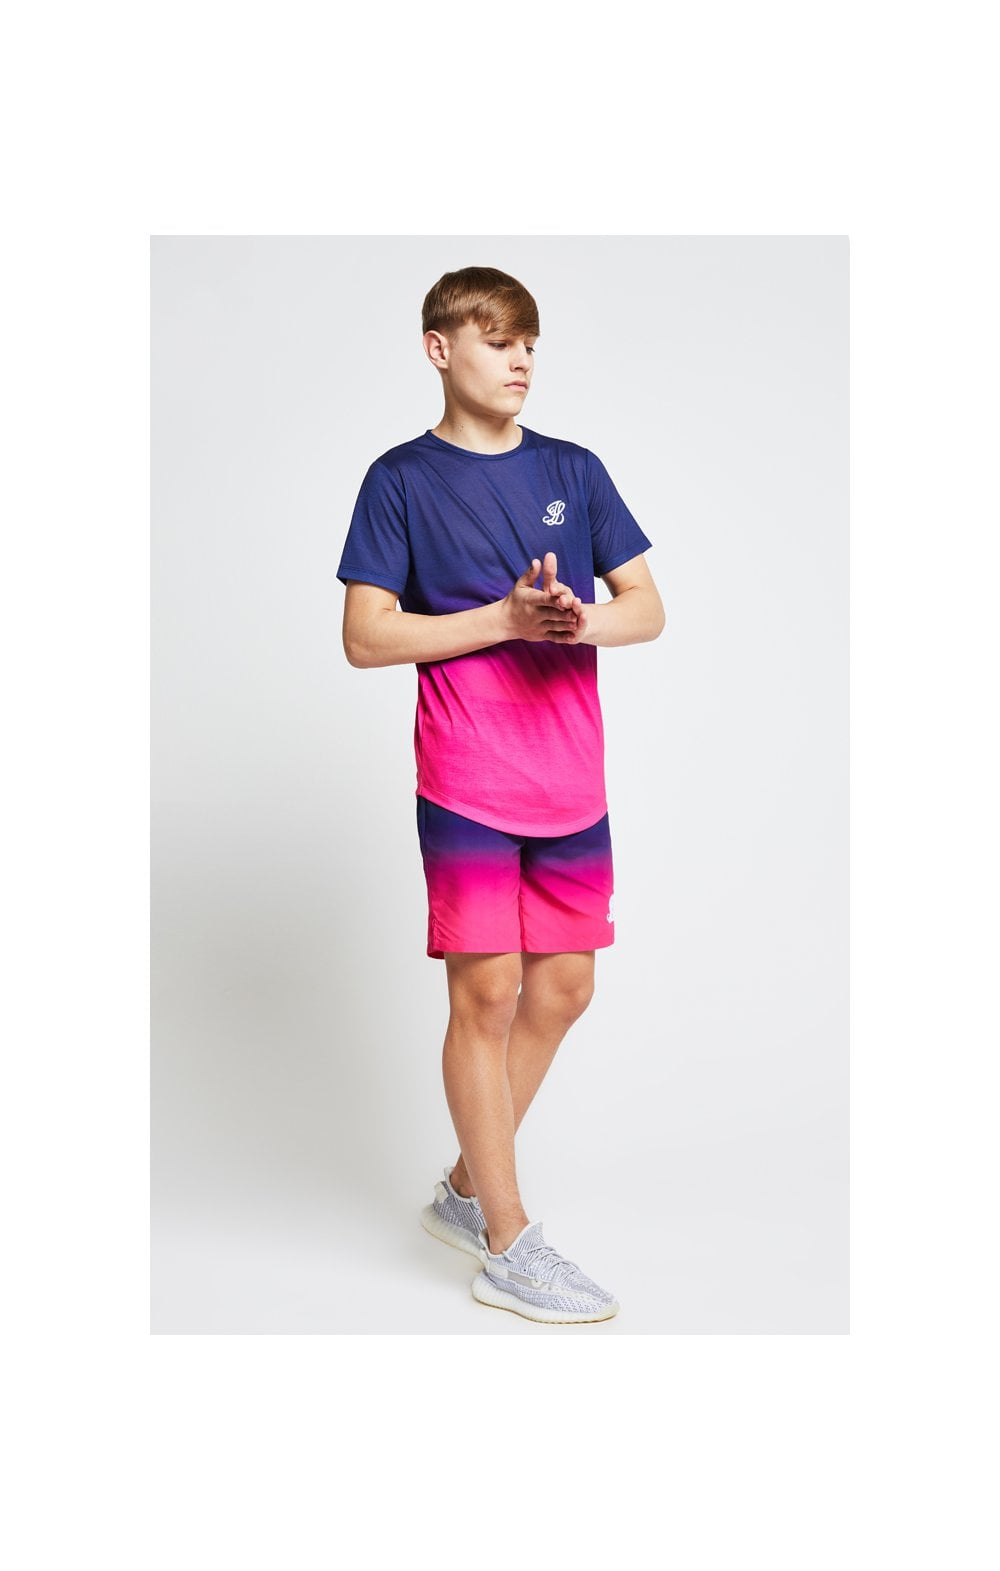 Load image into Gallery viewer, Illusive London Fade Tee - Navy & Pink (4)